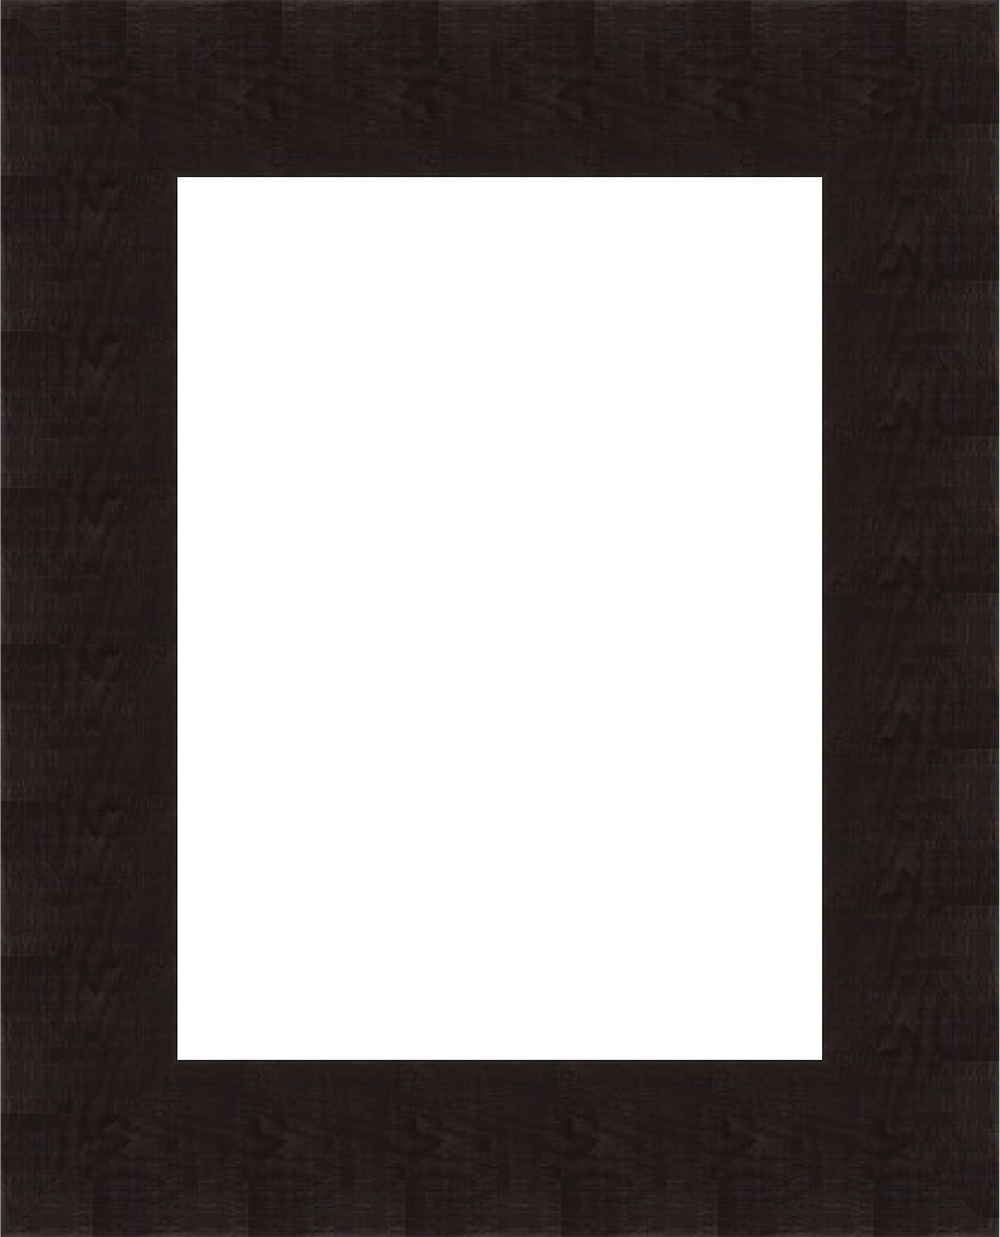 Black photo frame png. Square simple flat wood